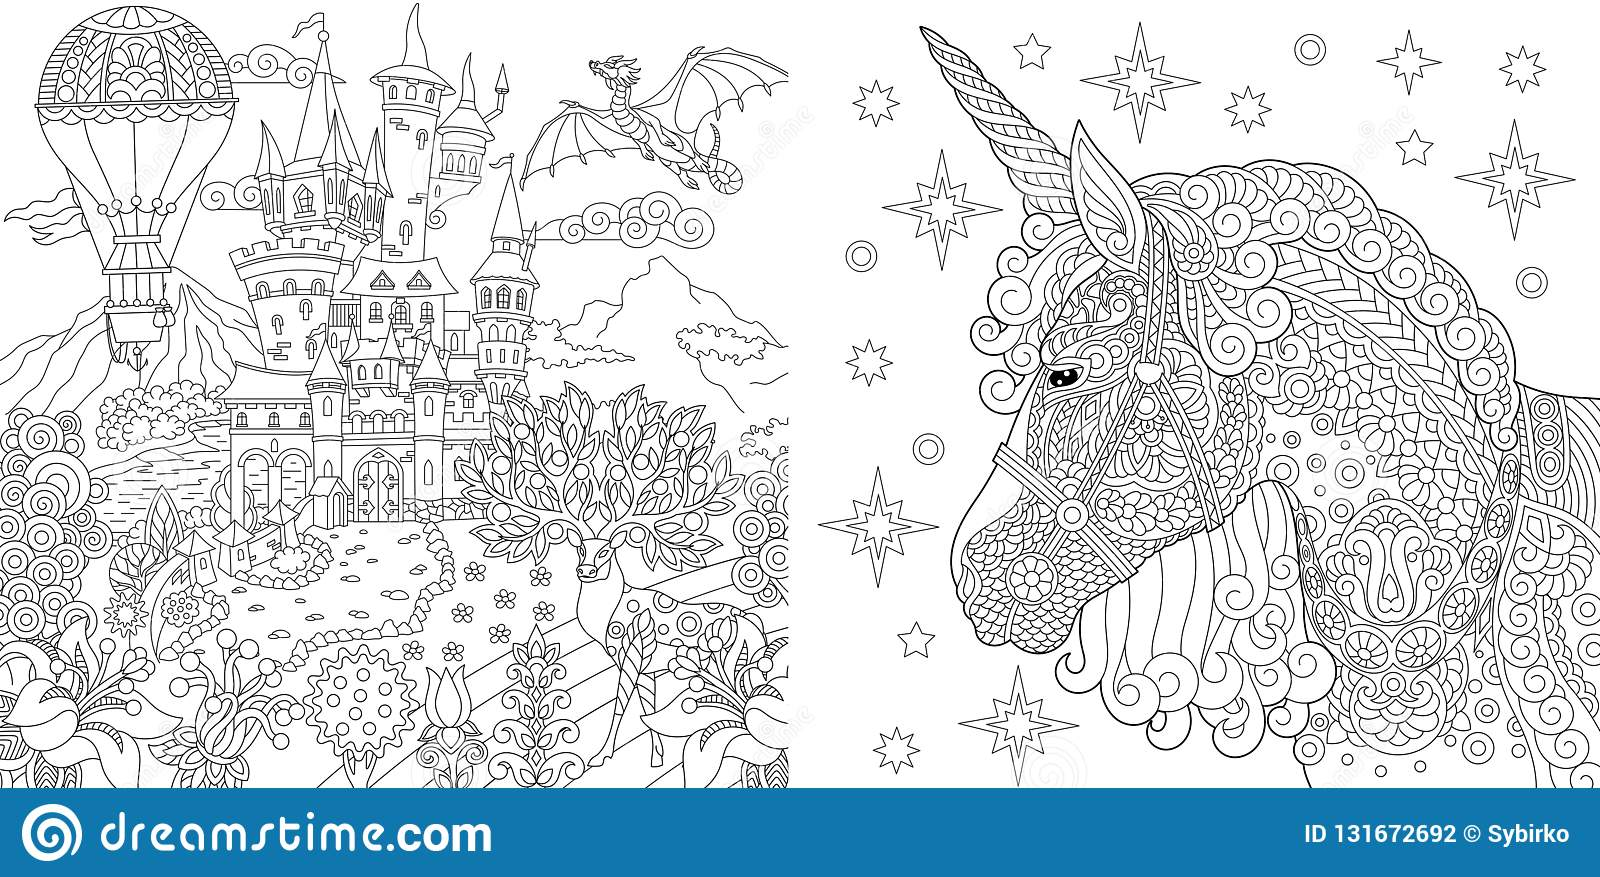 4100 Magic Coloring Book For Adults Free